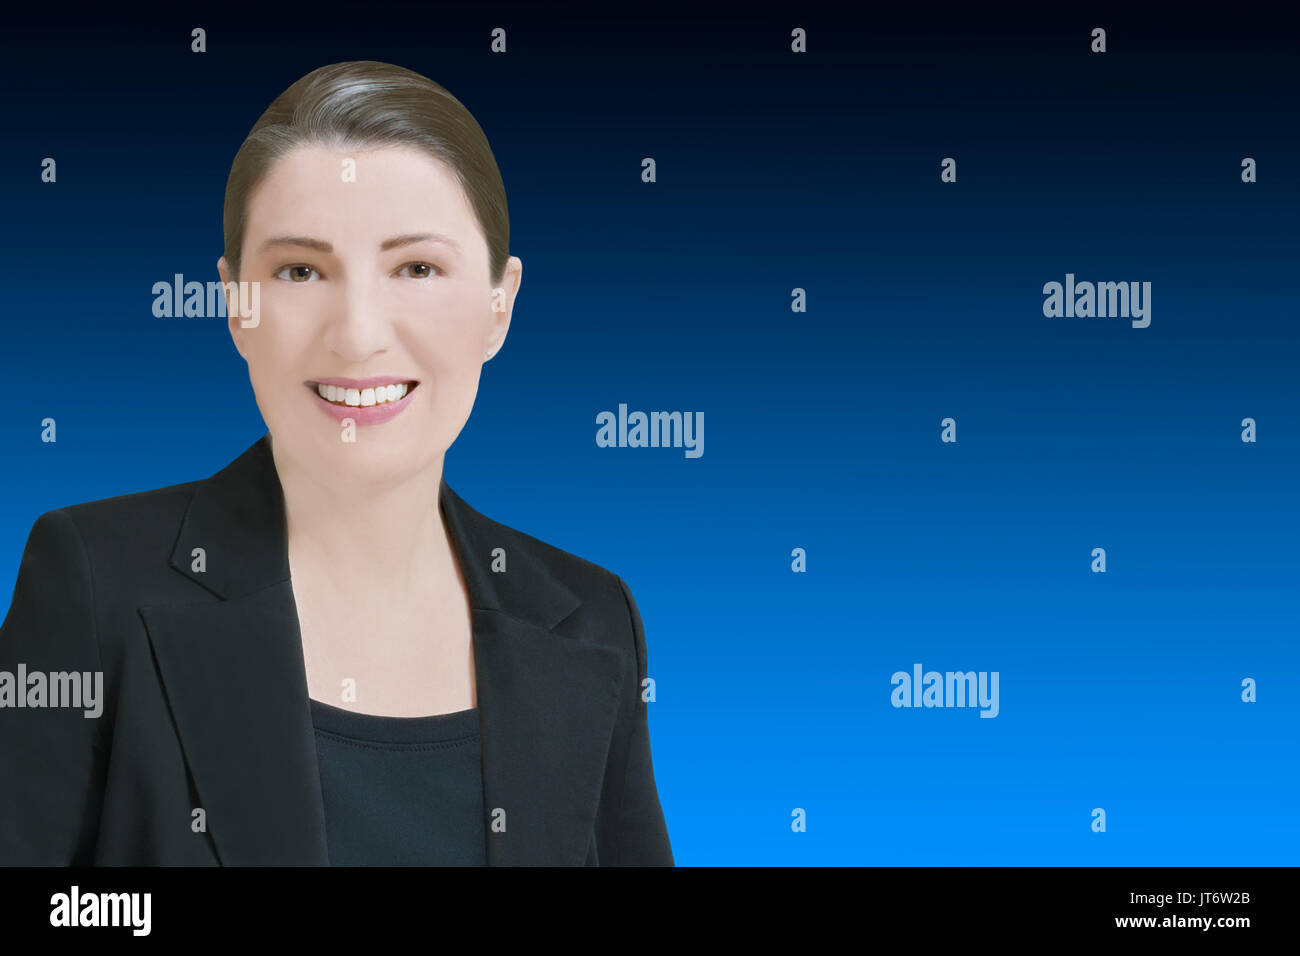 Female robo-advisor or chat bot concept template, friendly smiling computer generated woman in front of blue backdrop, Stock Photo